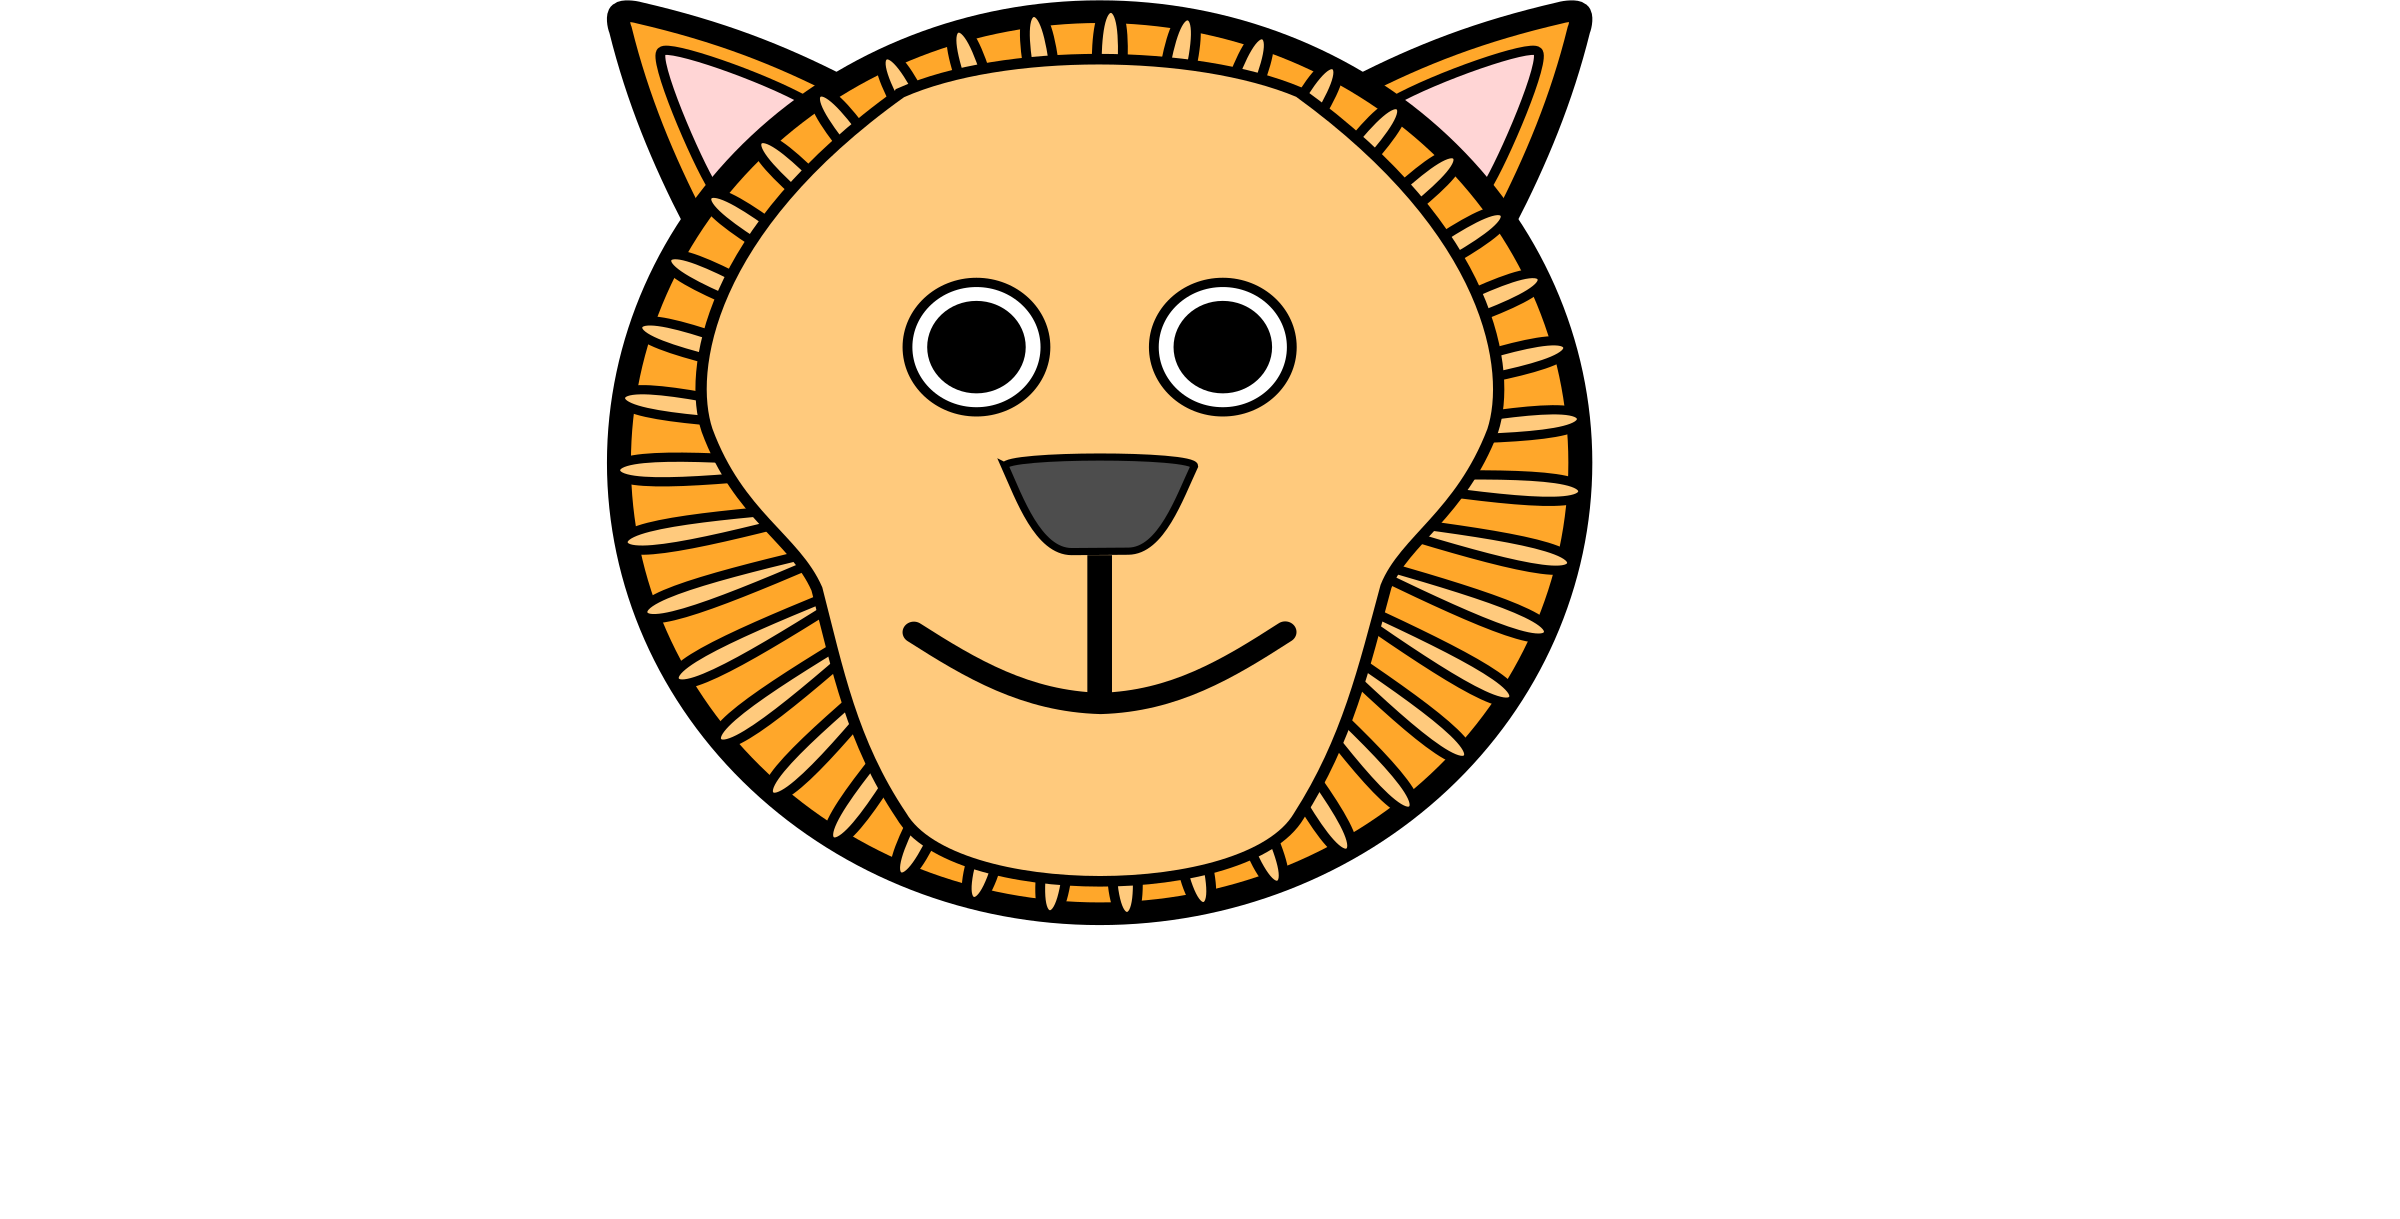 L for Lion by pranav